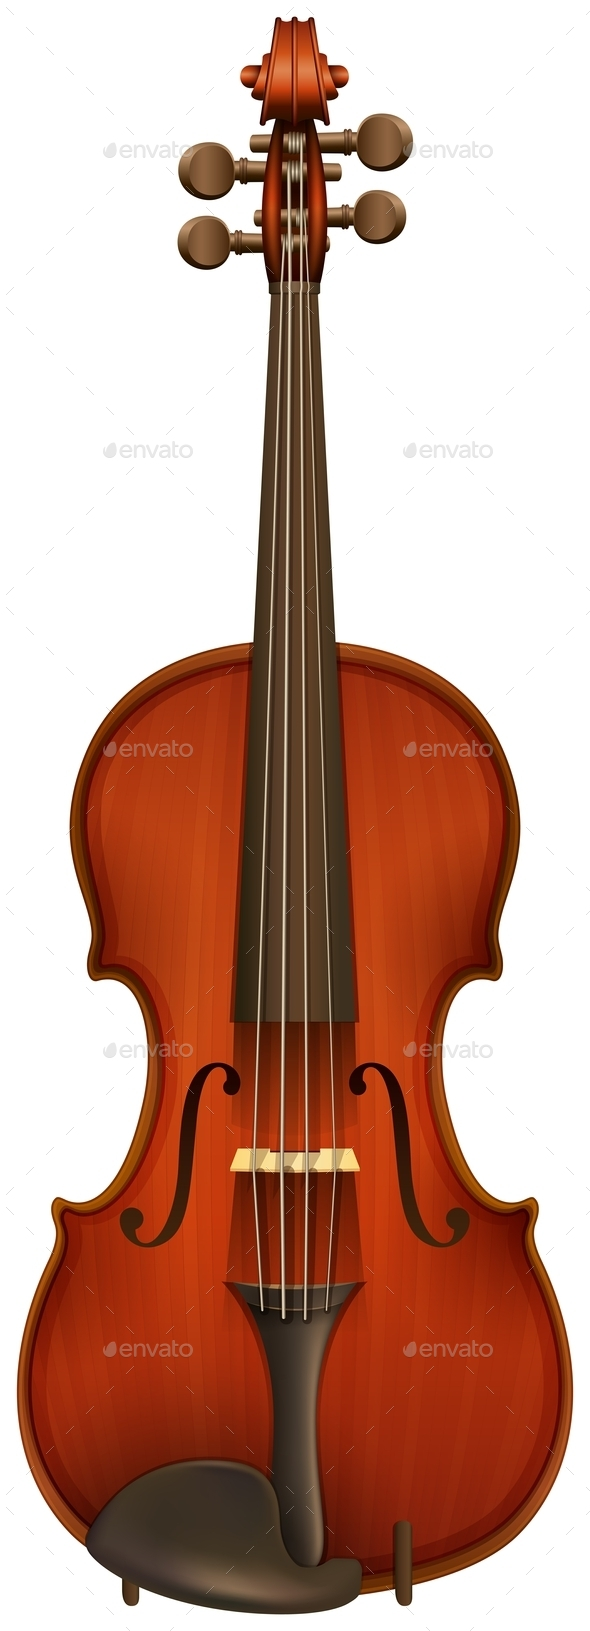 GraphicRiver Violin 10805359